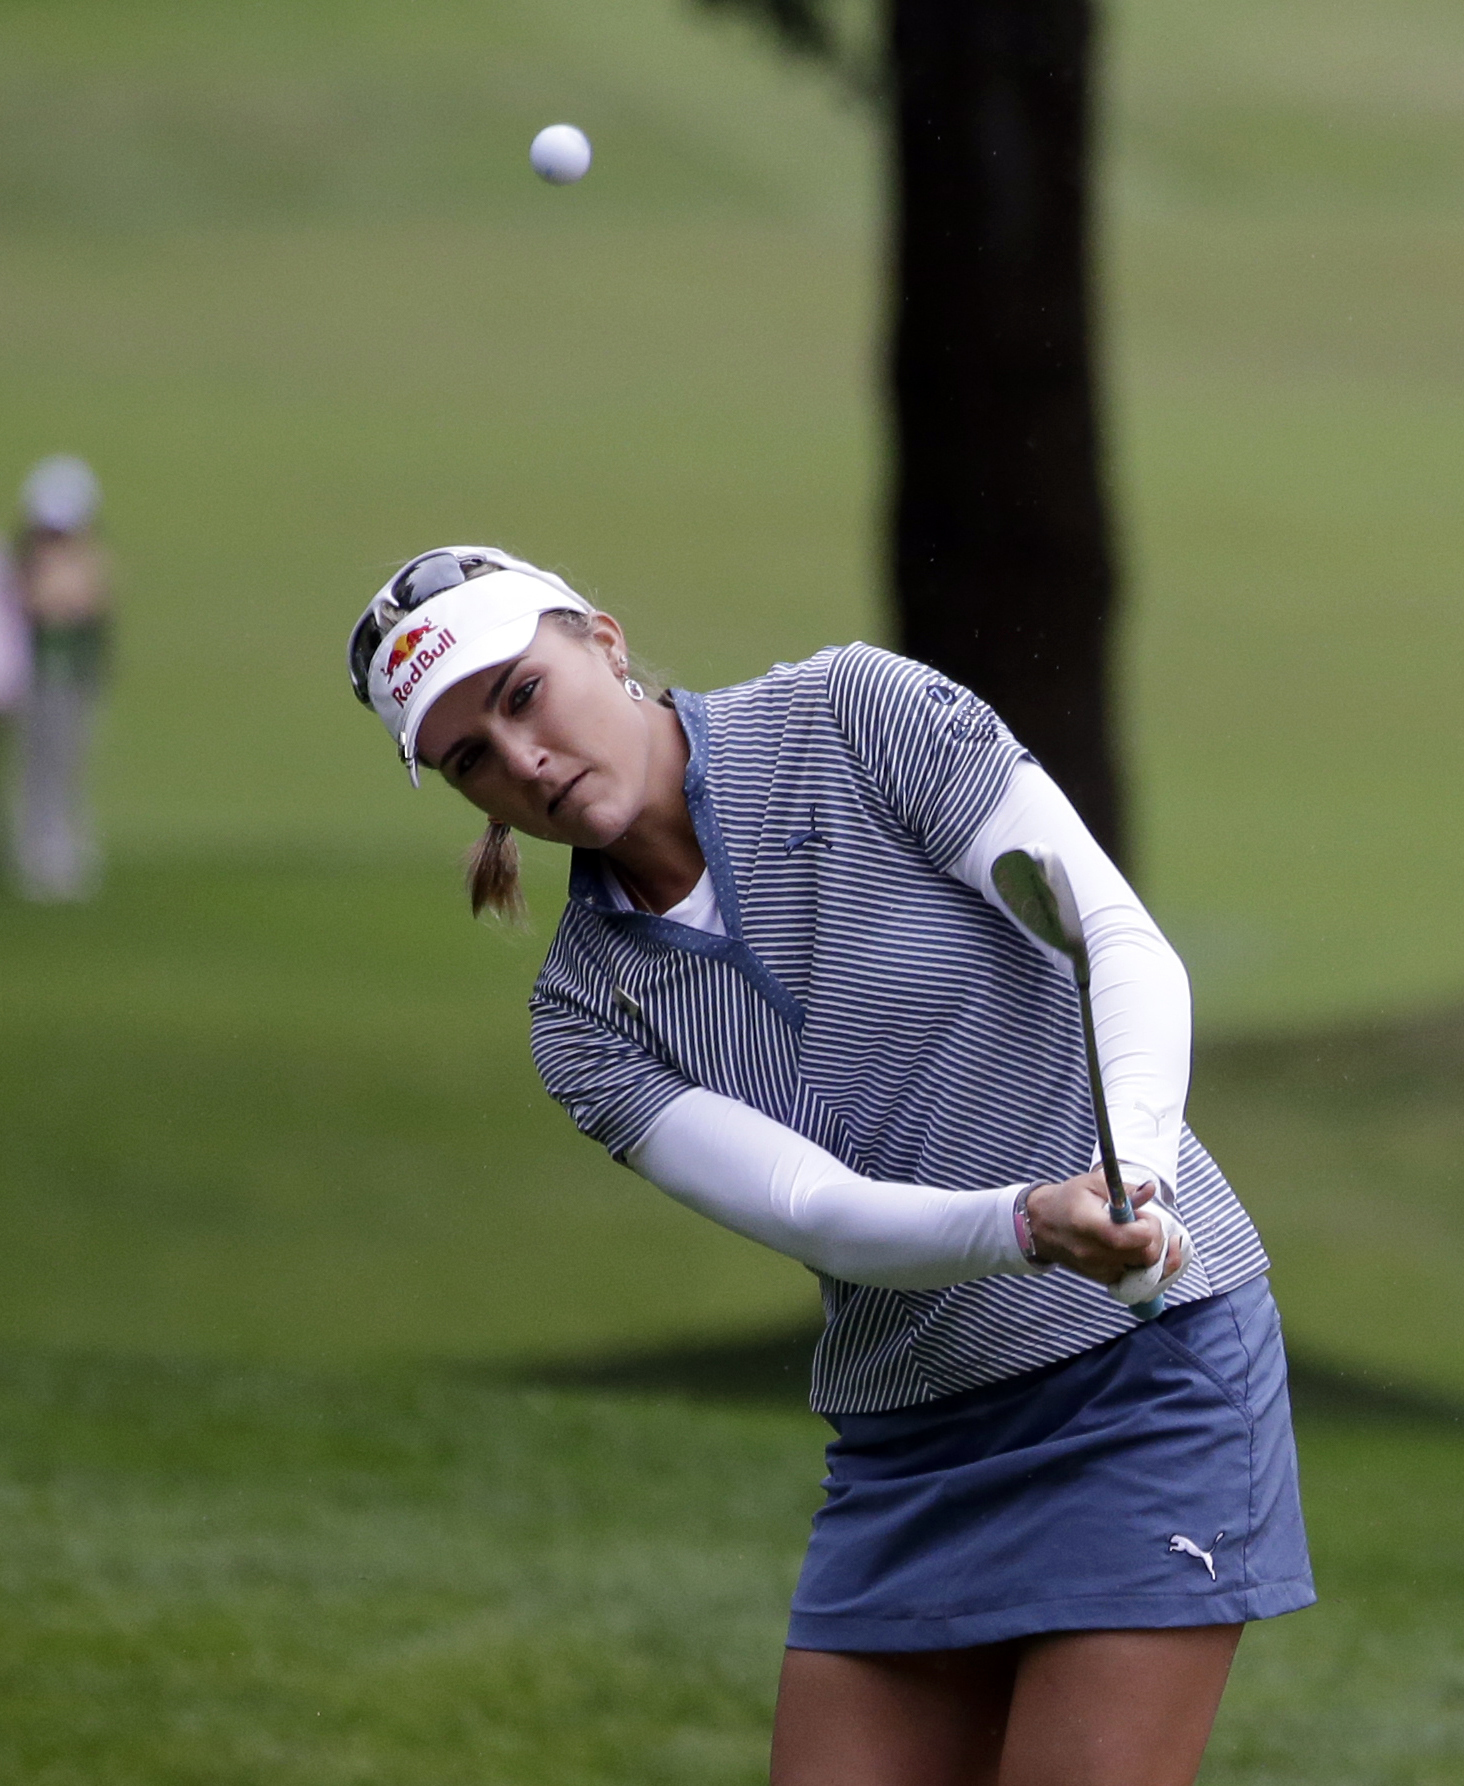 Lexi Thompson hits a shot on the sixth hole during the second round at the Women's PGA Championship golf tournament at Sahalee Country Club on Friday, June 10, 2016, in Sammamish, Wash. (AP Photo/Elaine Thompson)